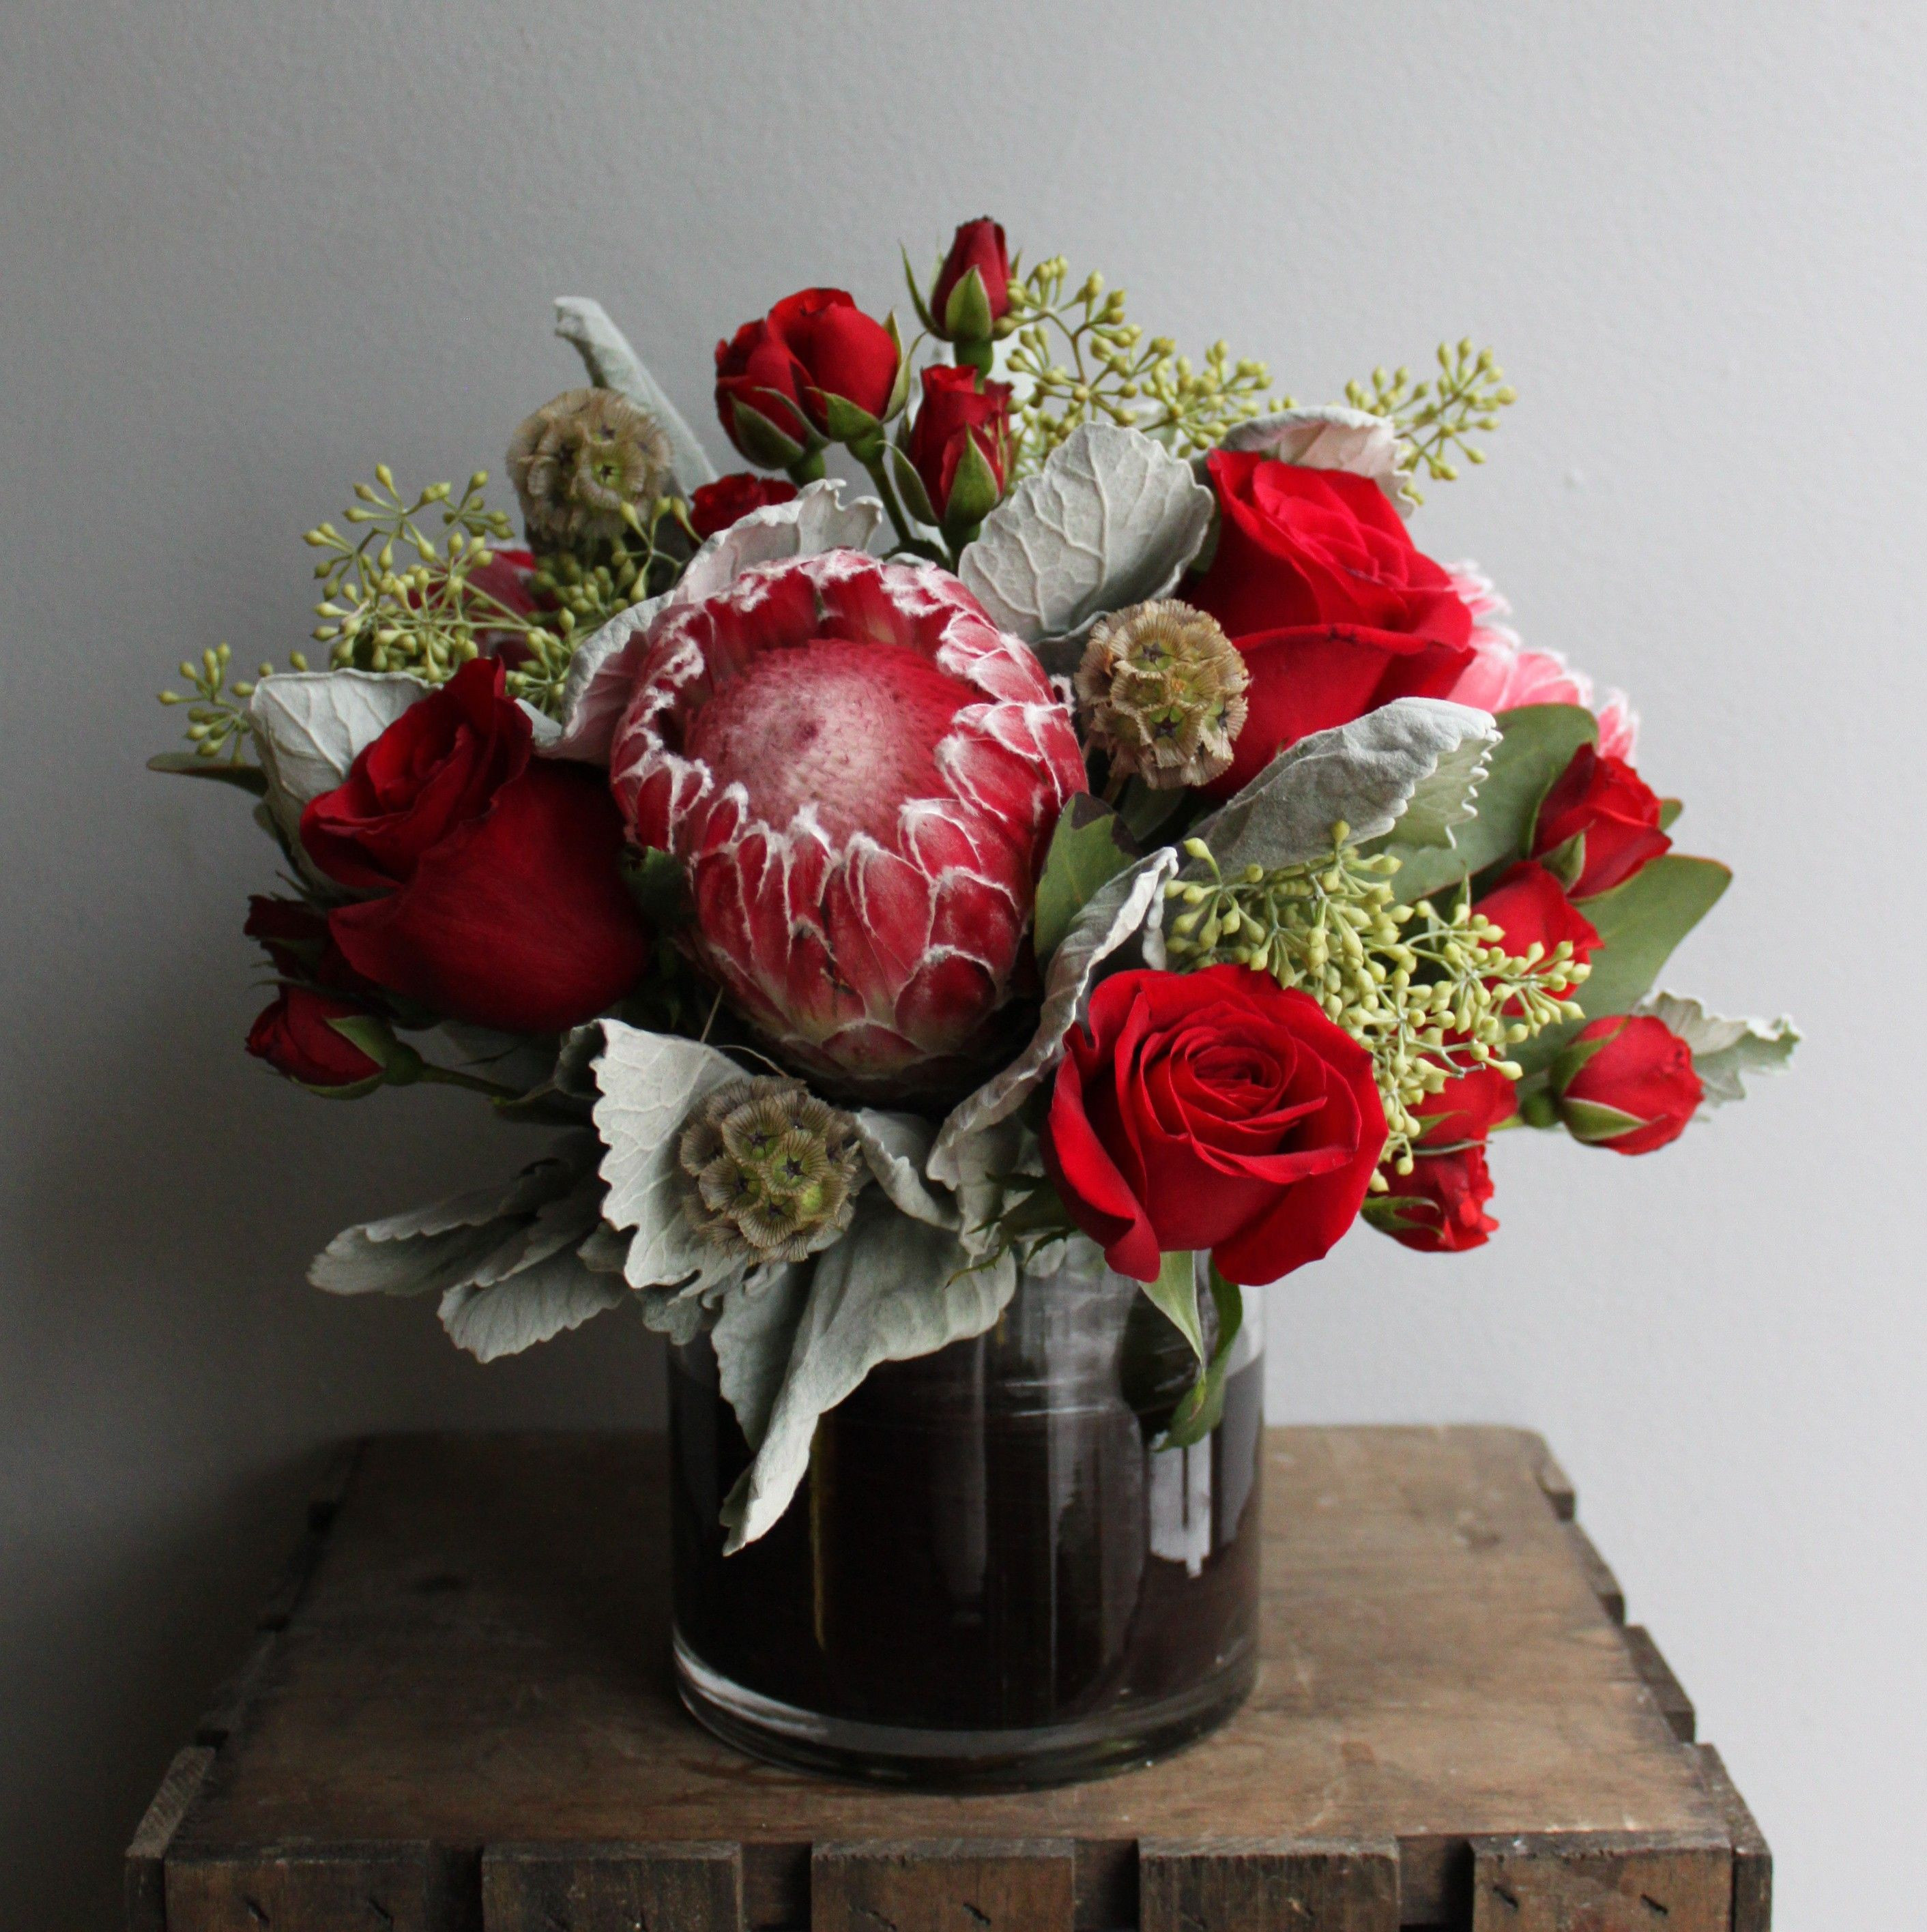 Send the CORA bouquet of flowers from Back Bay Florist in Boston MA Local fresh flower delivery directly from the florist and never in a box